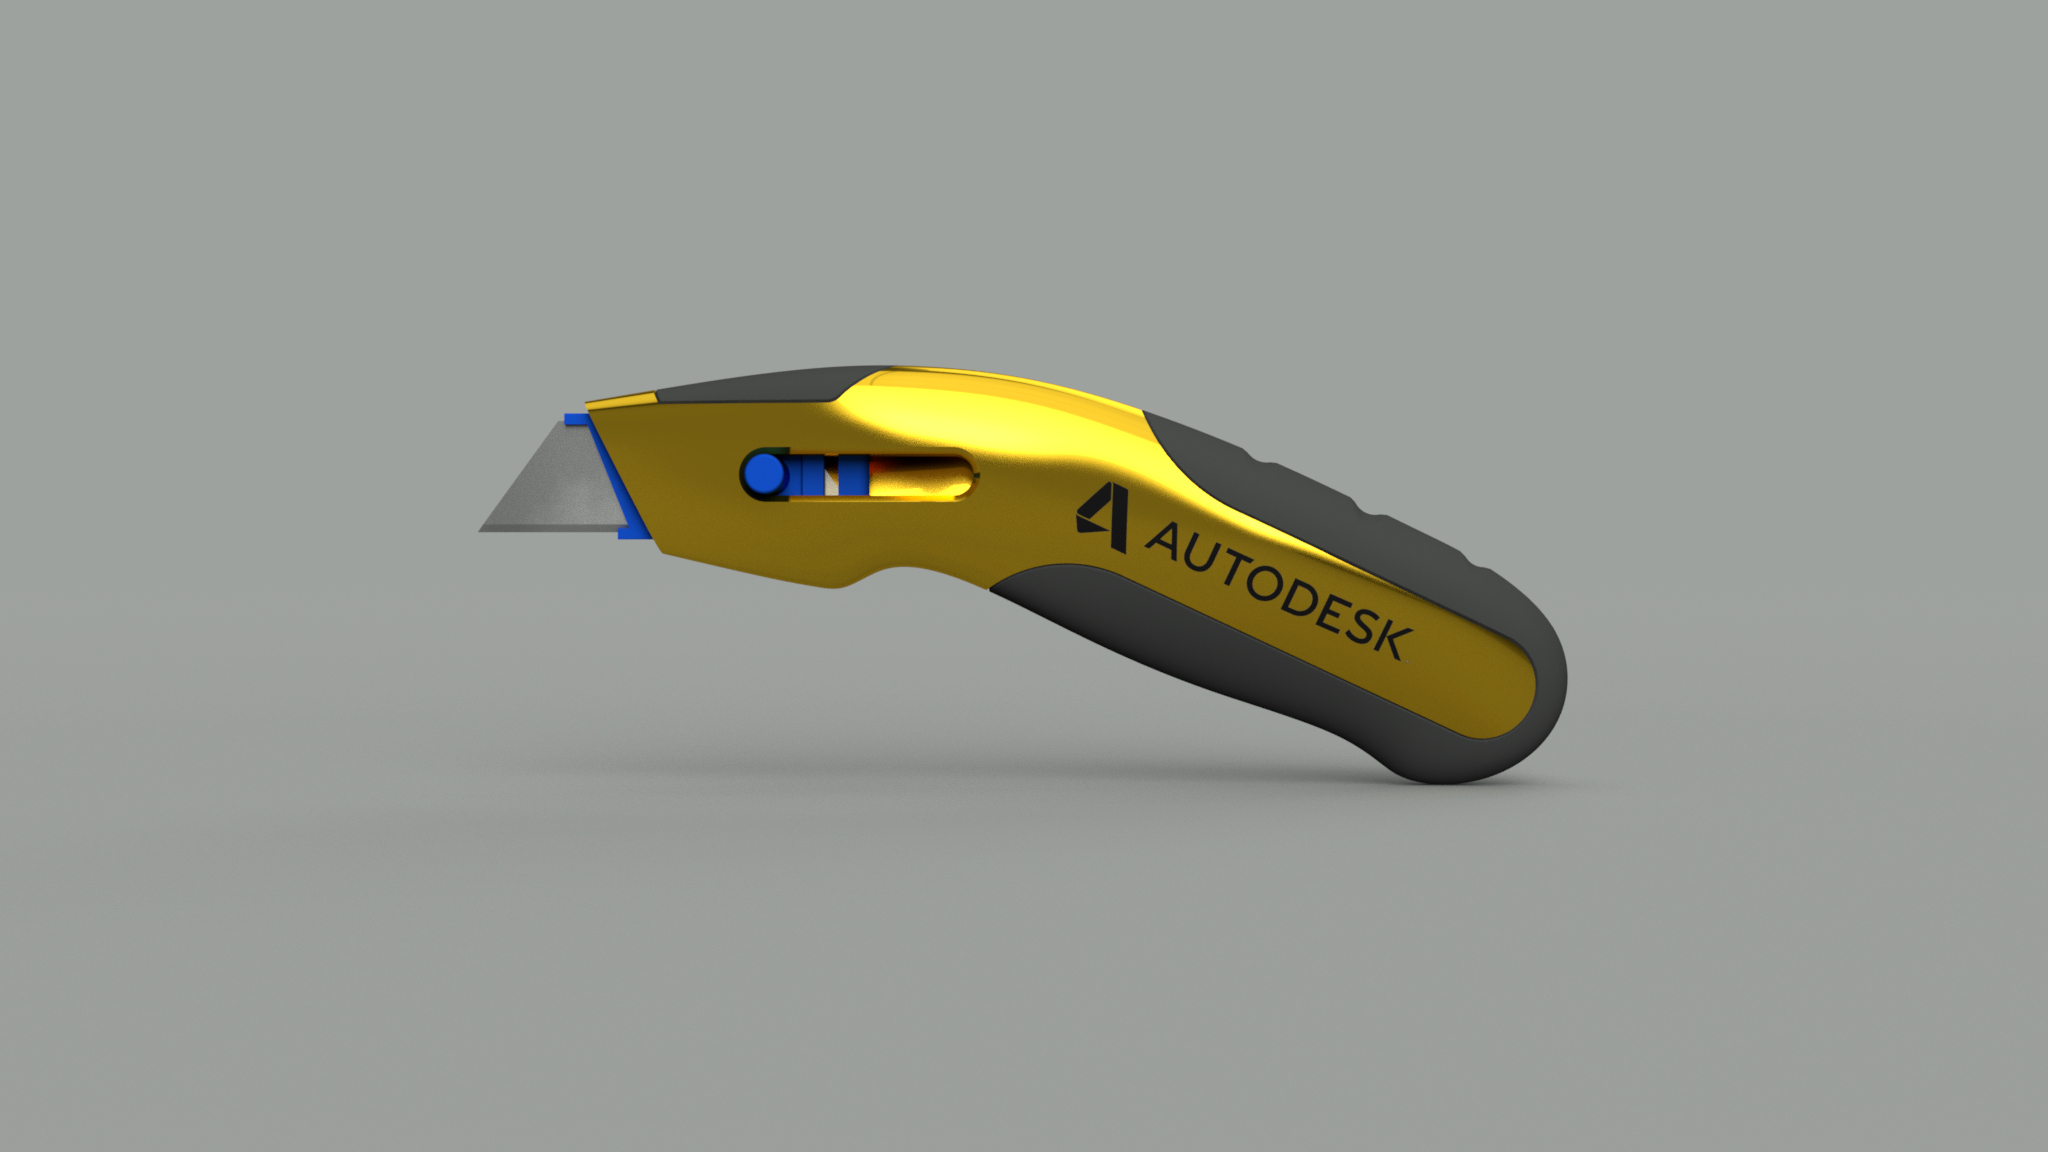 Utility-knife-f3d-2015-may-07-04-27-06pm-000-right-3500-3500